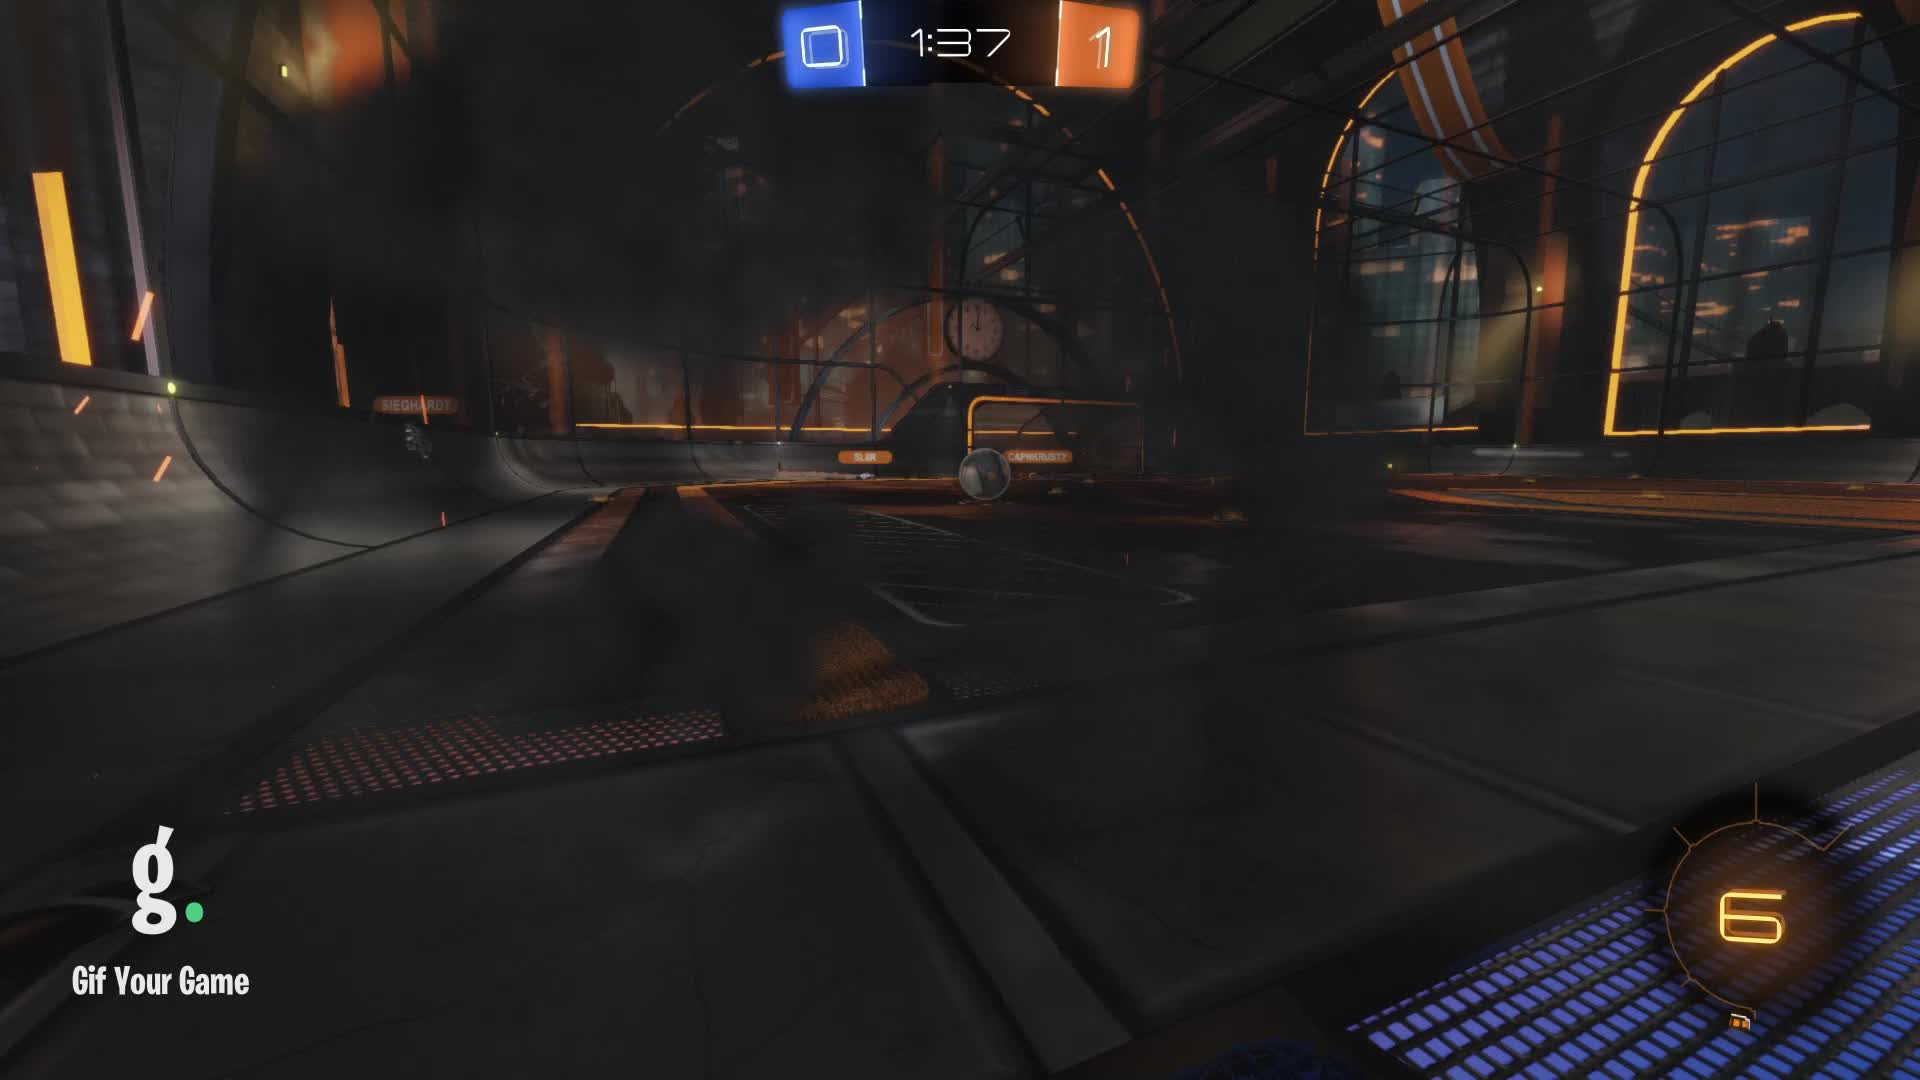 Gif Your Game, GifYourGame, Rocket League, RocketLeague, cdrch, Save 3: cdrch GIFs